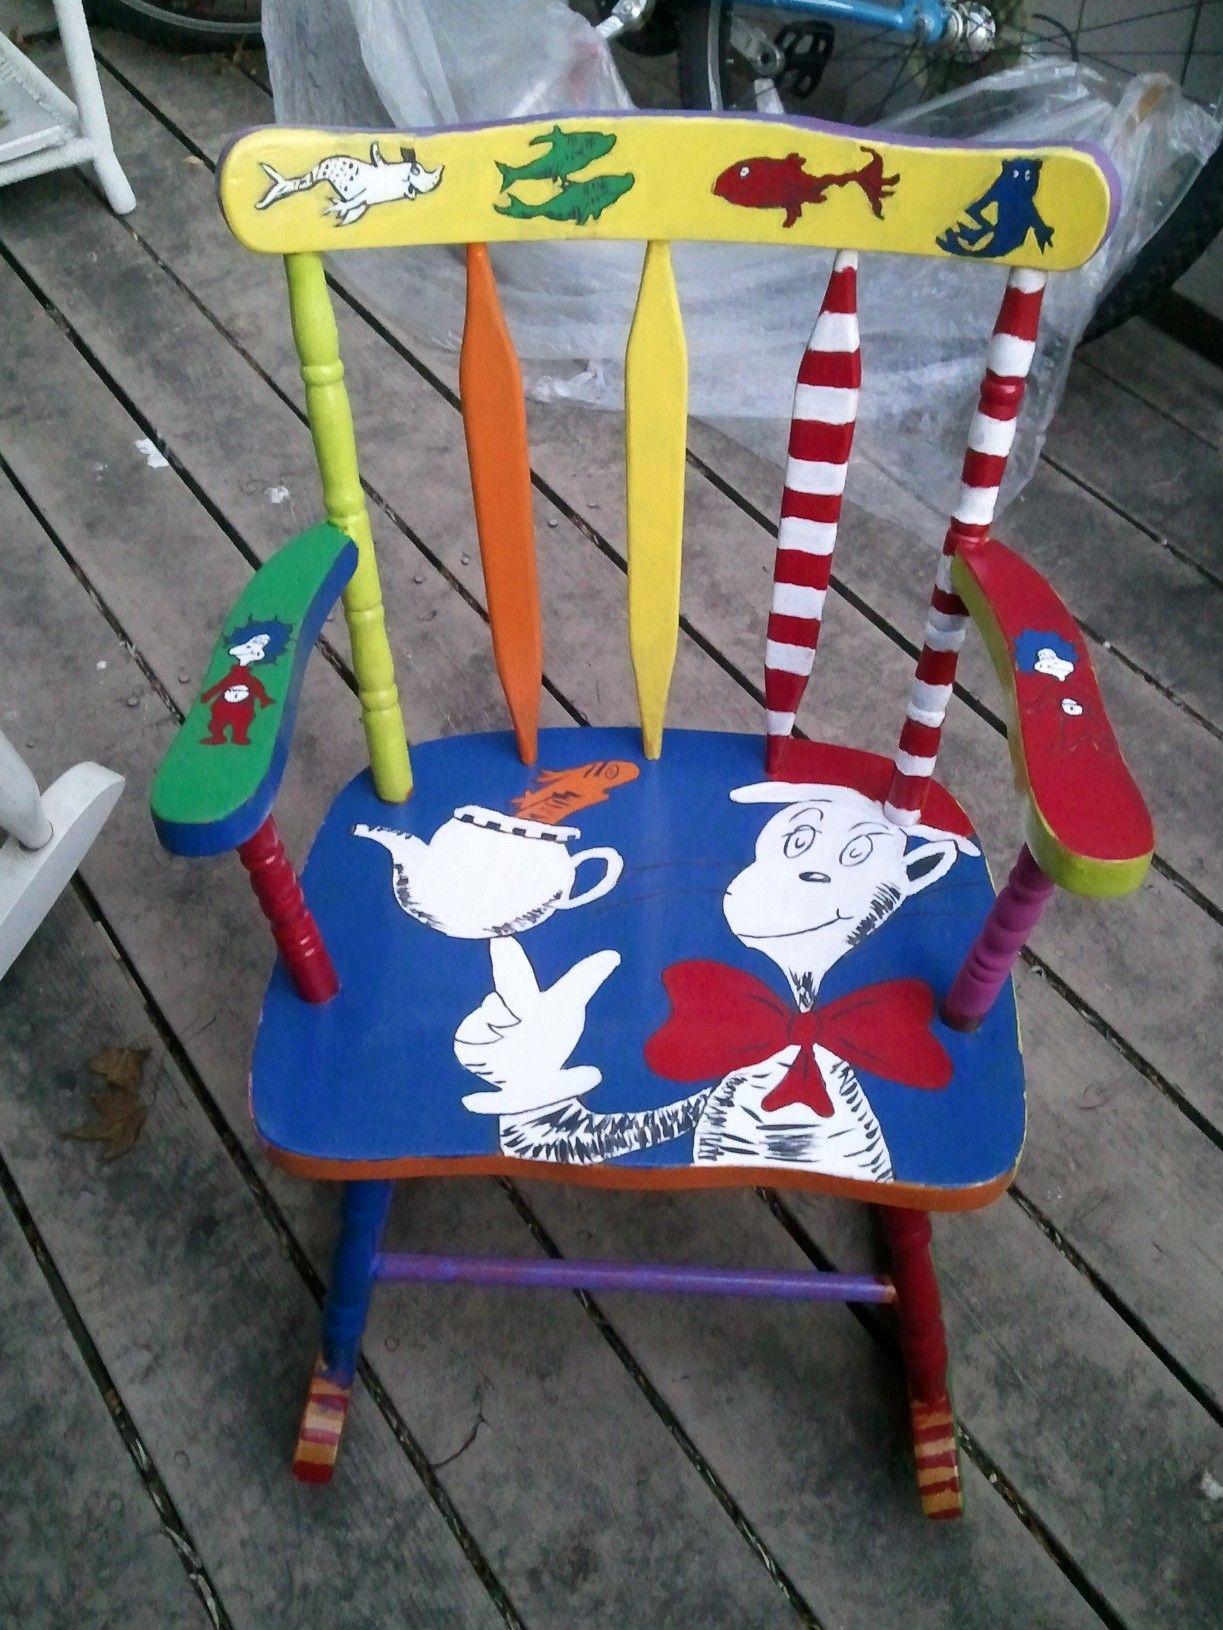 dr seuss chair my first graders and i made last year front view